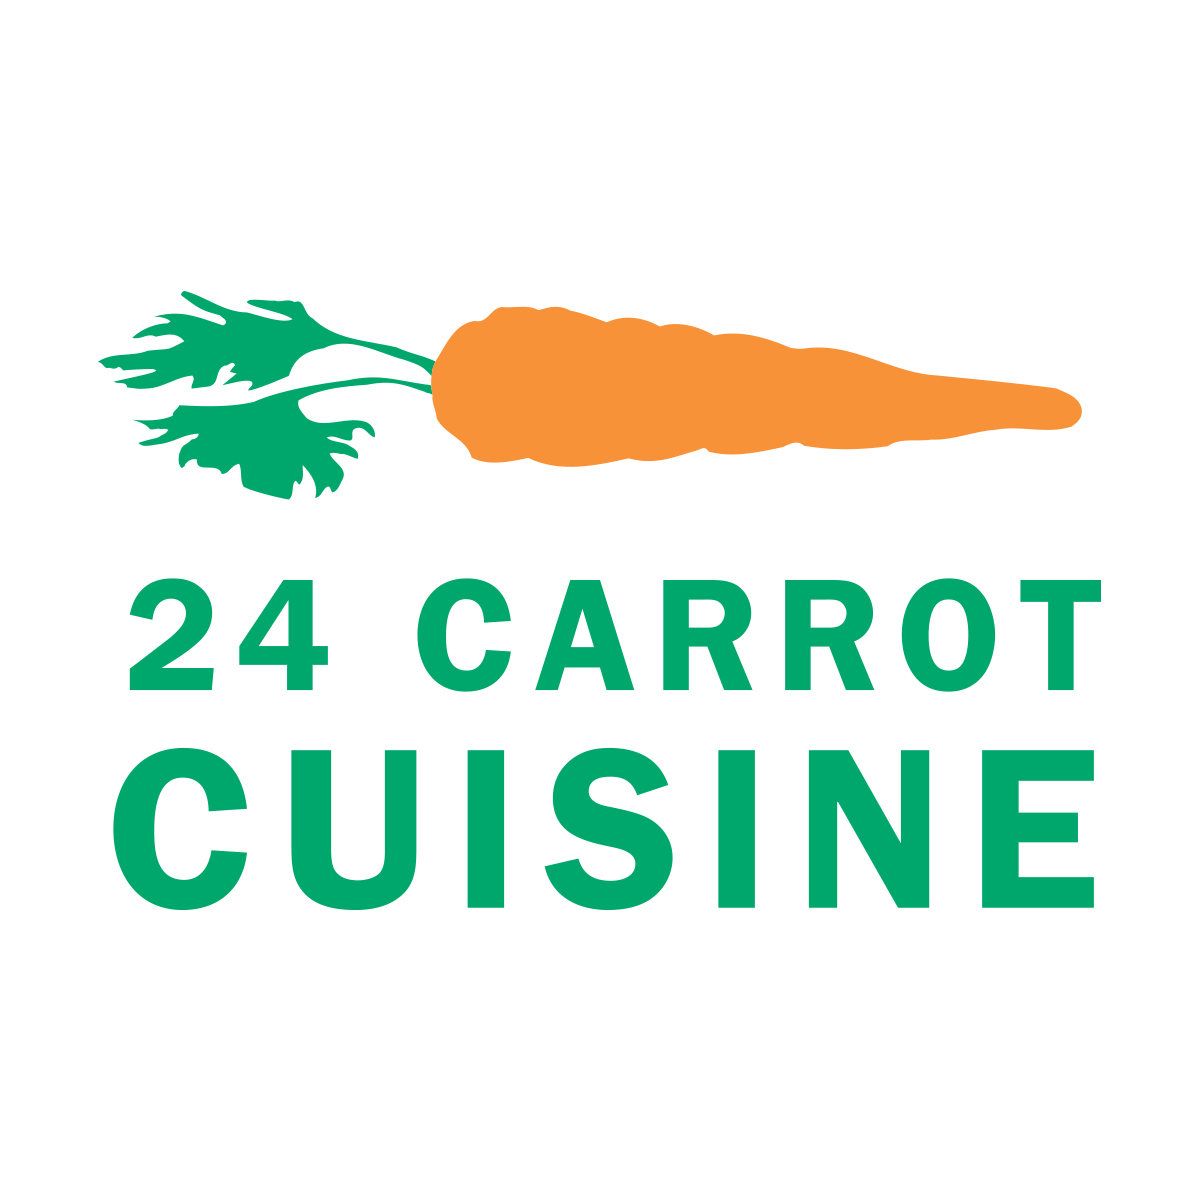 24 Carrot Cuisine, Healthy Catering